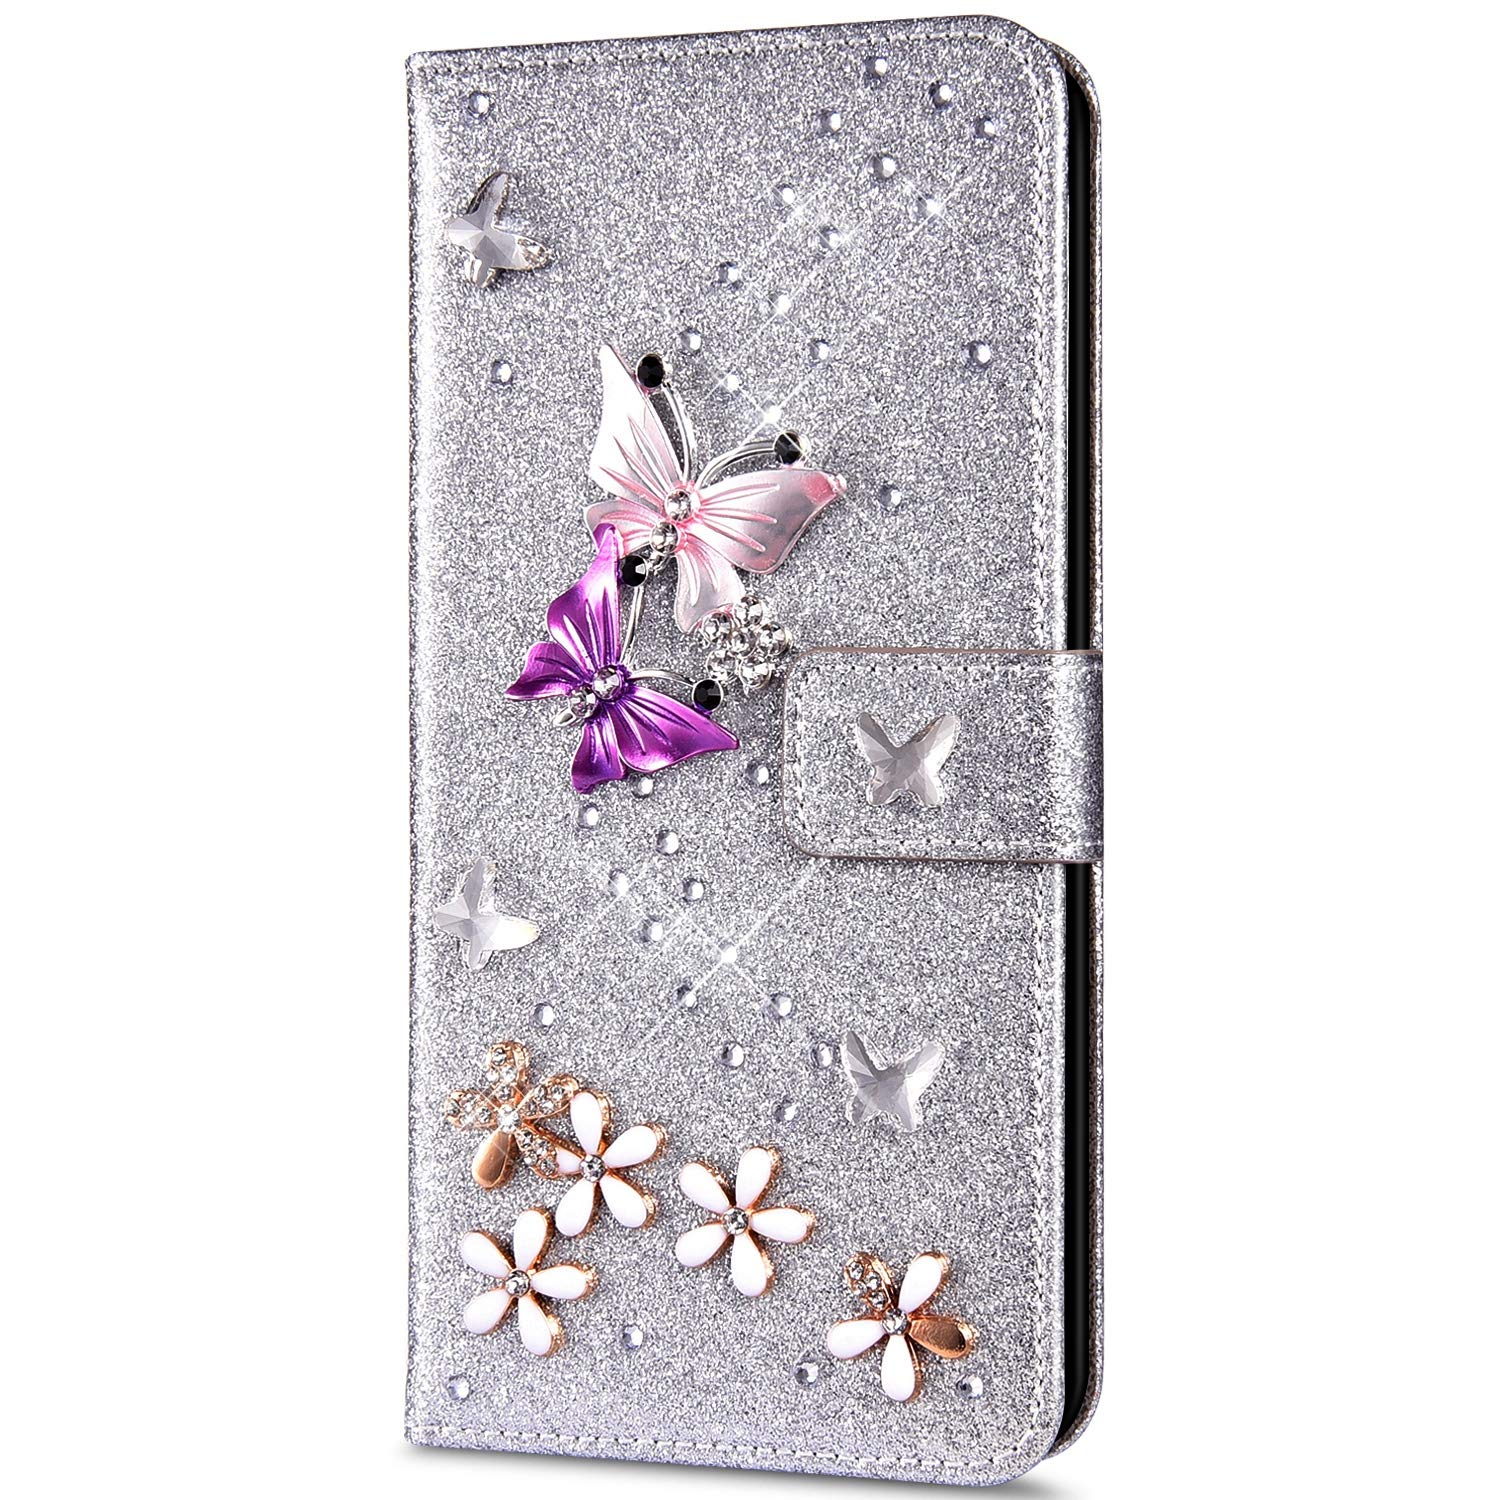 Case for iPhone X/iPhone XS Flip Case Premium PU Leather Wallet Case 3D Handmade Glitter Bling Shiny Diamond Butterfly with Card Slots Kickstand for iPhone X/XS,Silver by ikasus